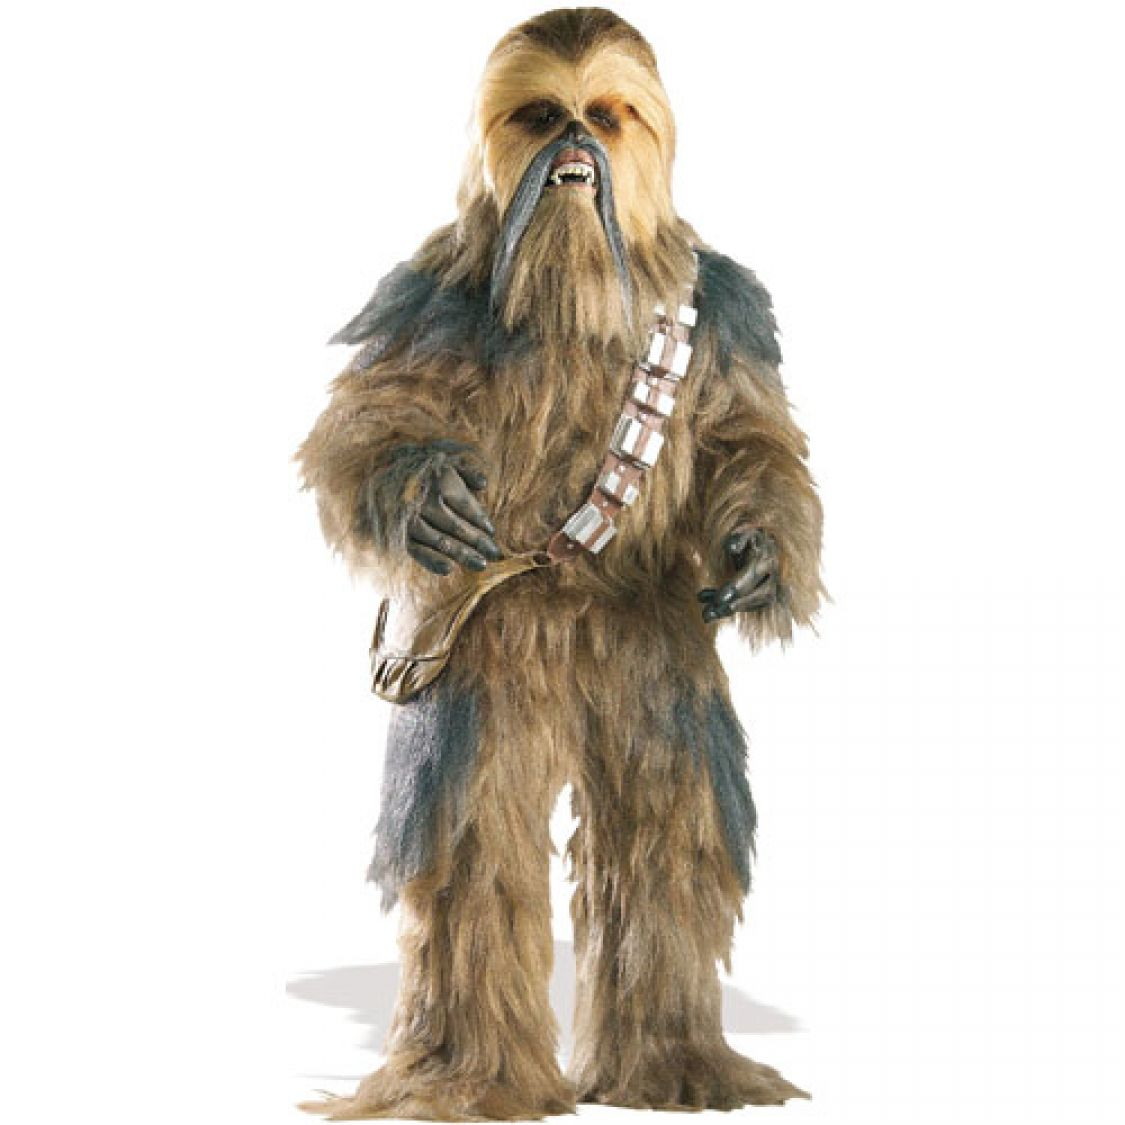 d guisement collector chewbacca homme. Black Bedroom Furniture Sets. Home Design Ideas